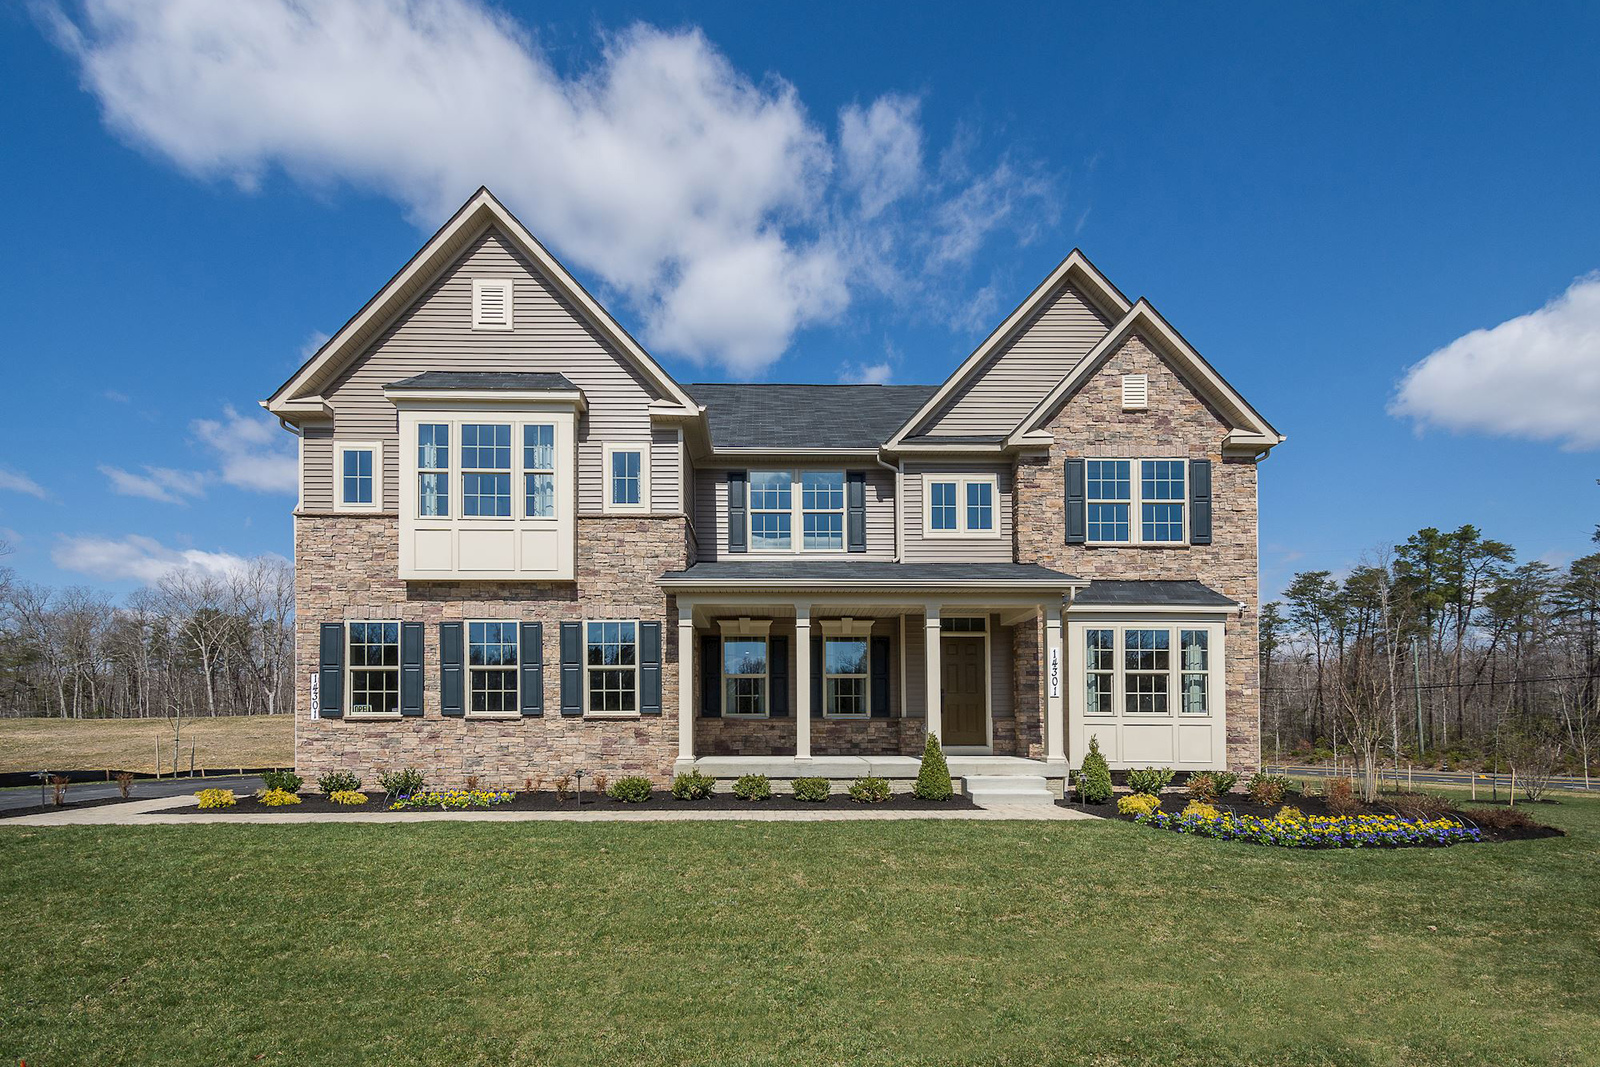 New homes for sale at falls grove in college grove tn for Modern homes for sale in virginia